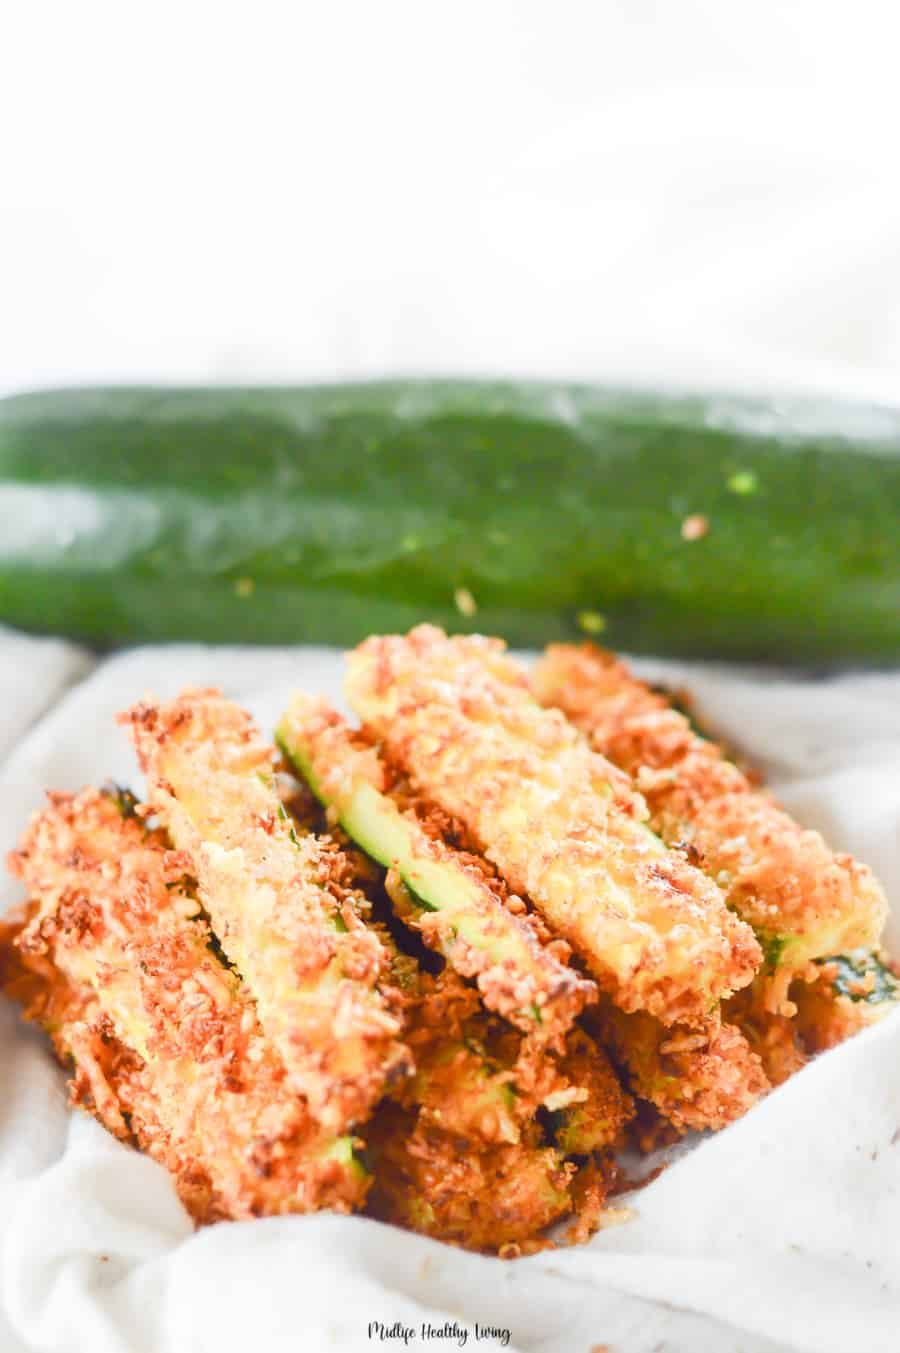 A pile of delicious zucchini fries ready to be shared.